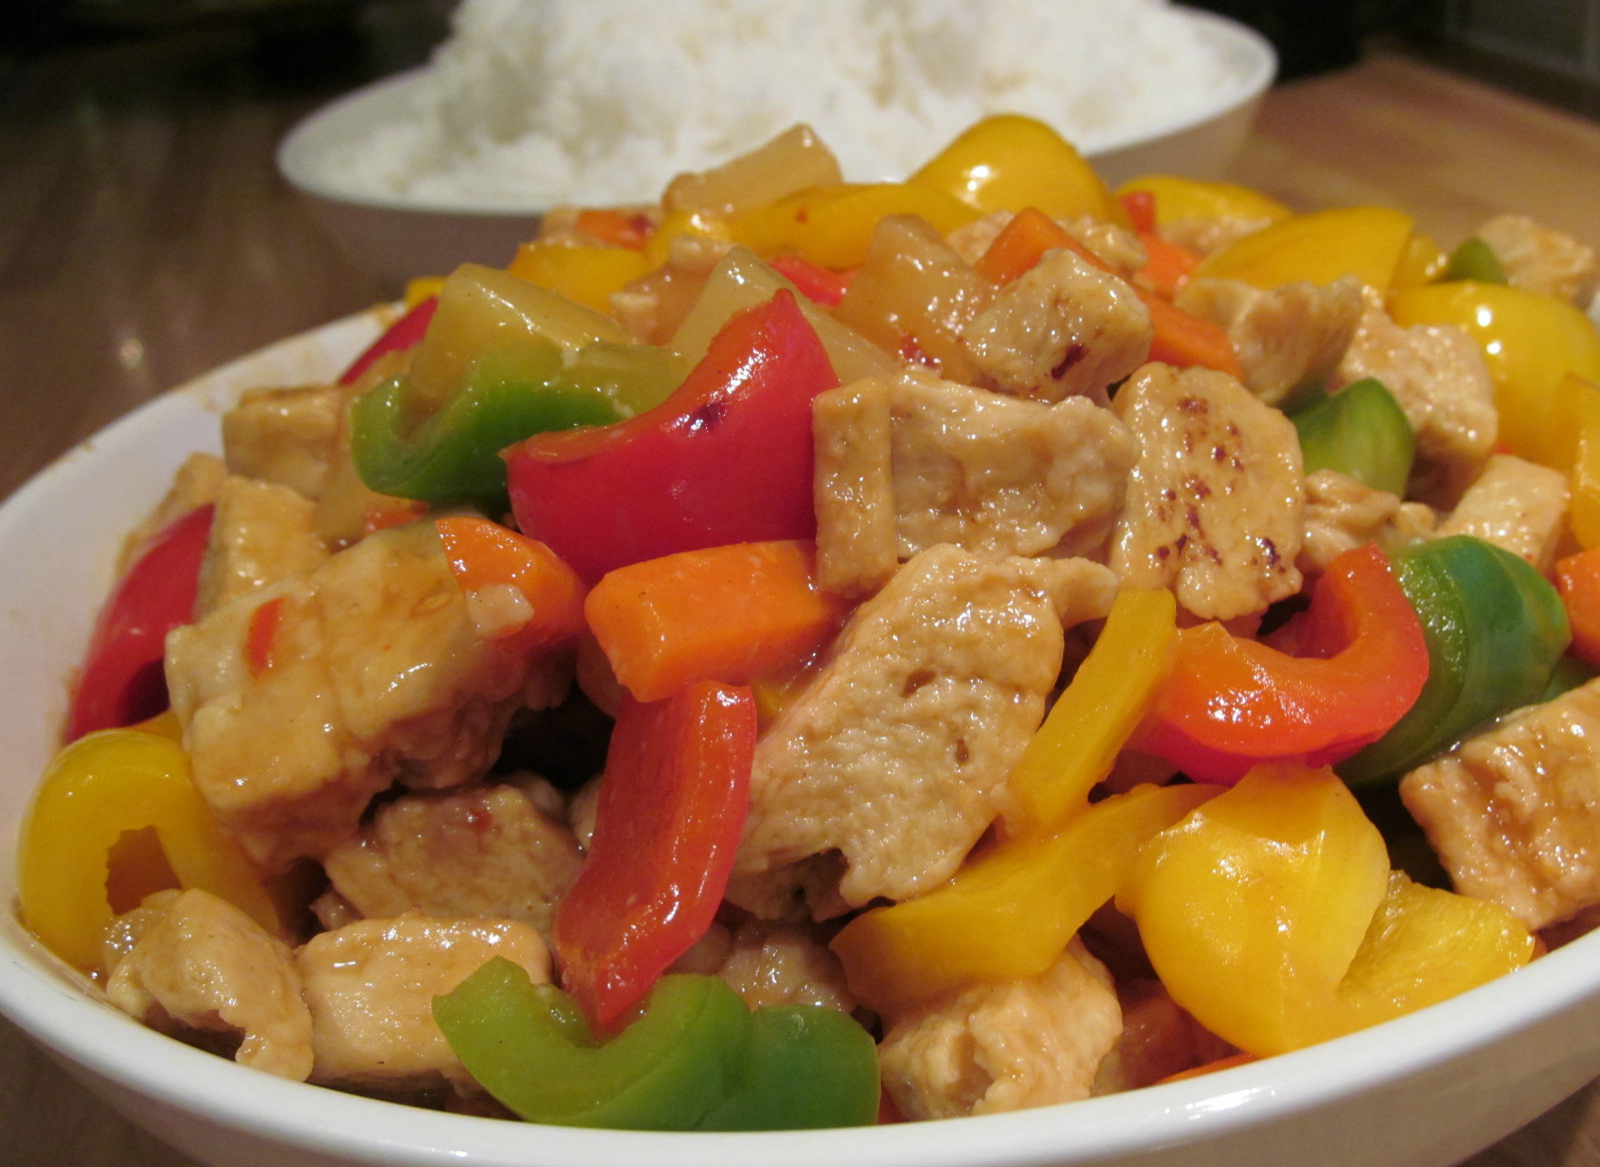 Good Food, Shared: Hairy Bikers Sweet and Sour Chicken (Lo Cal)